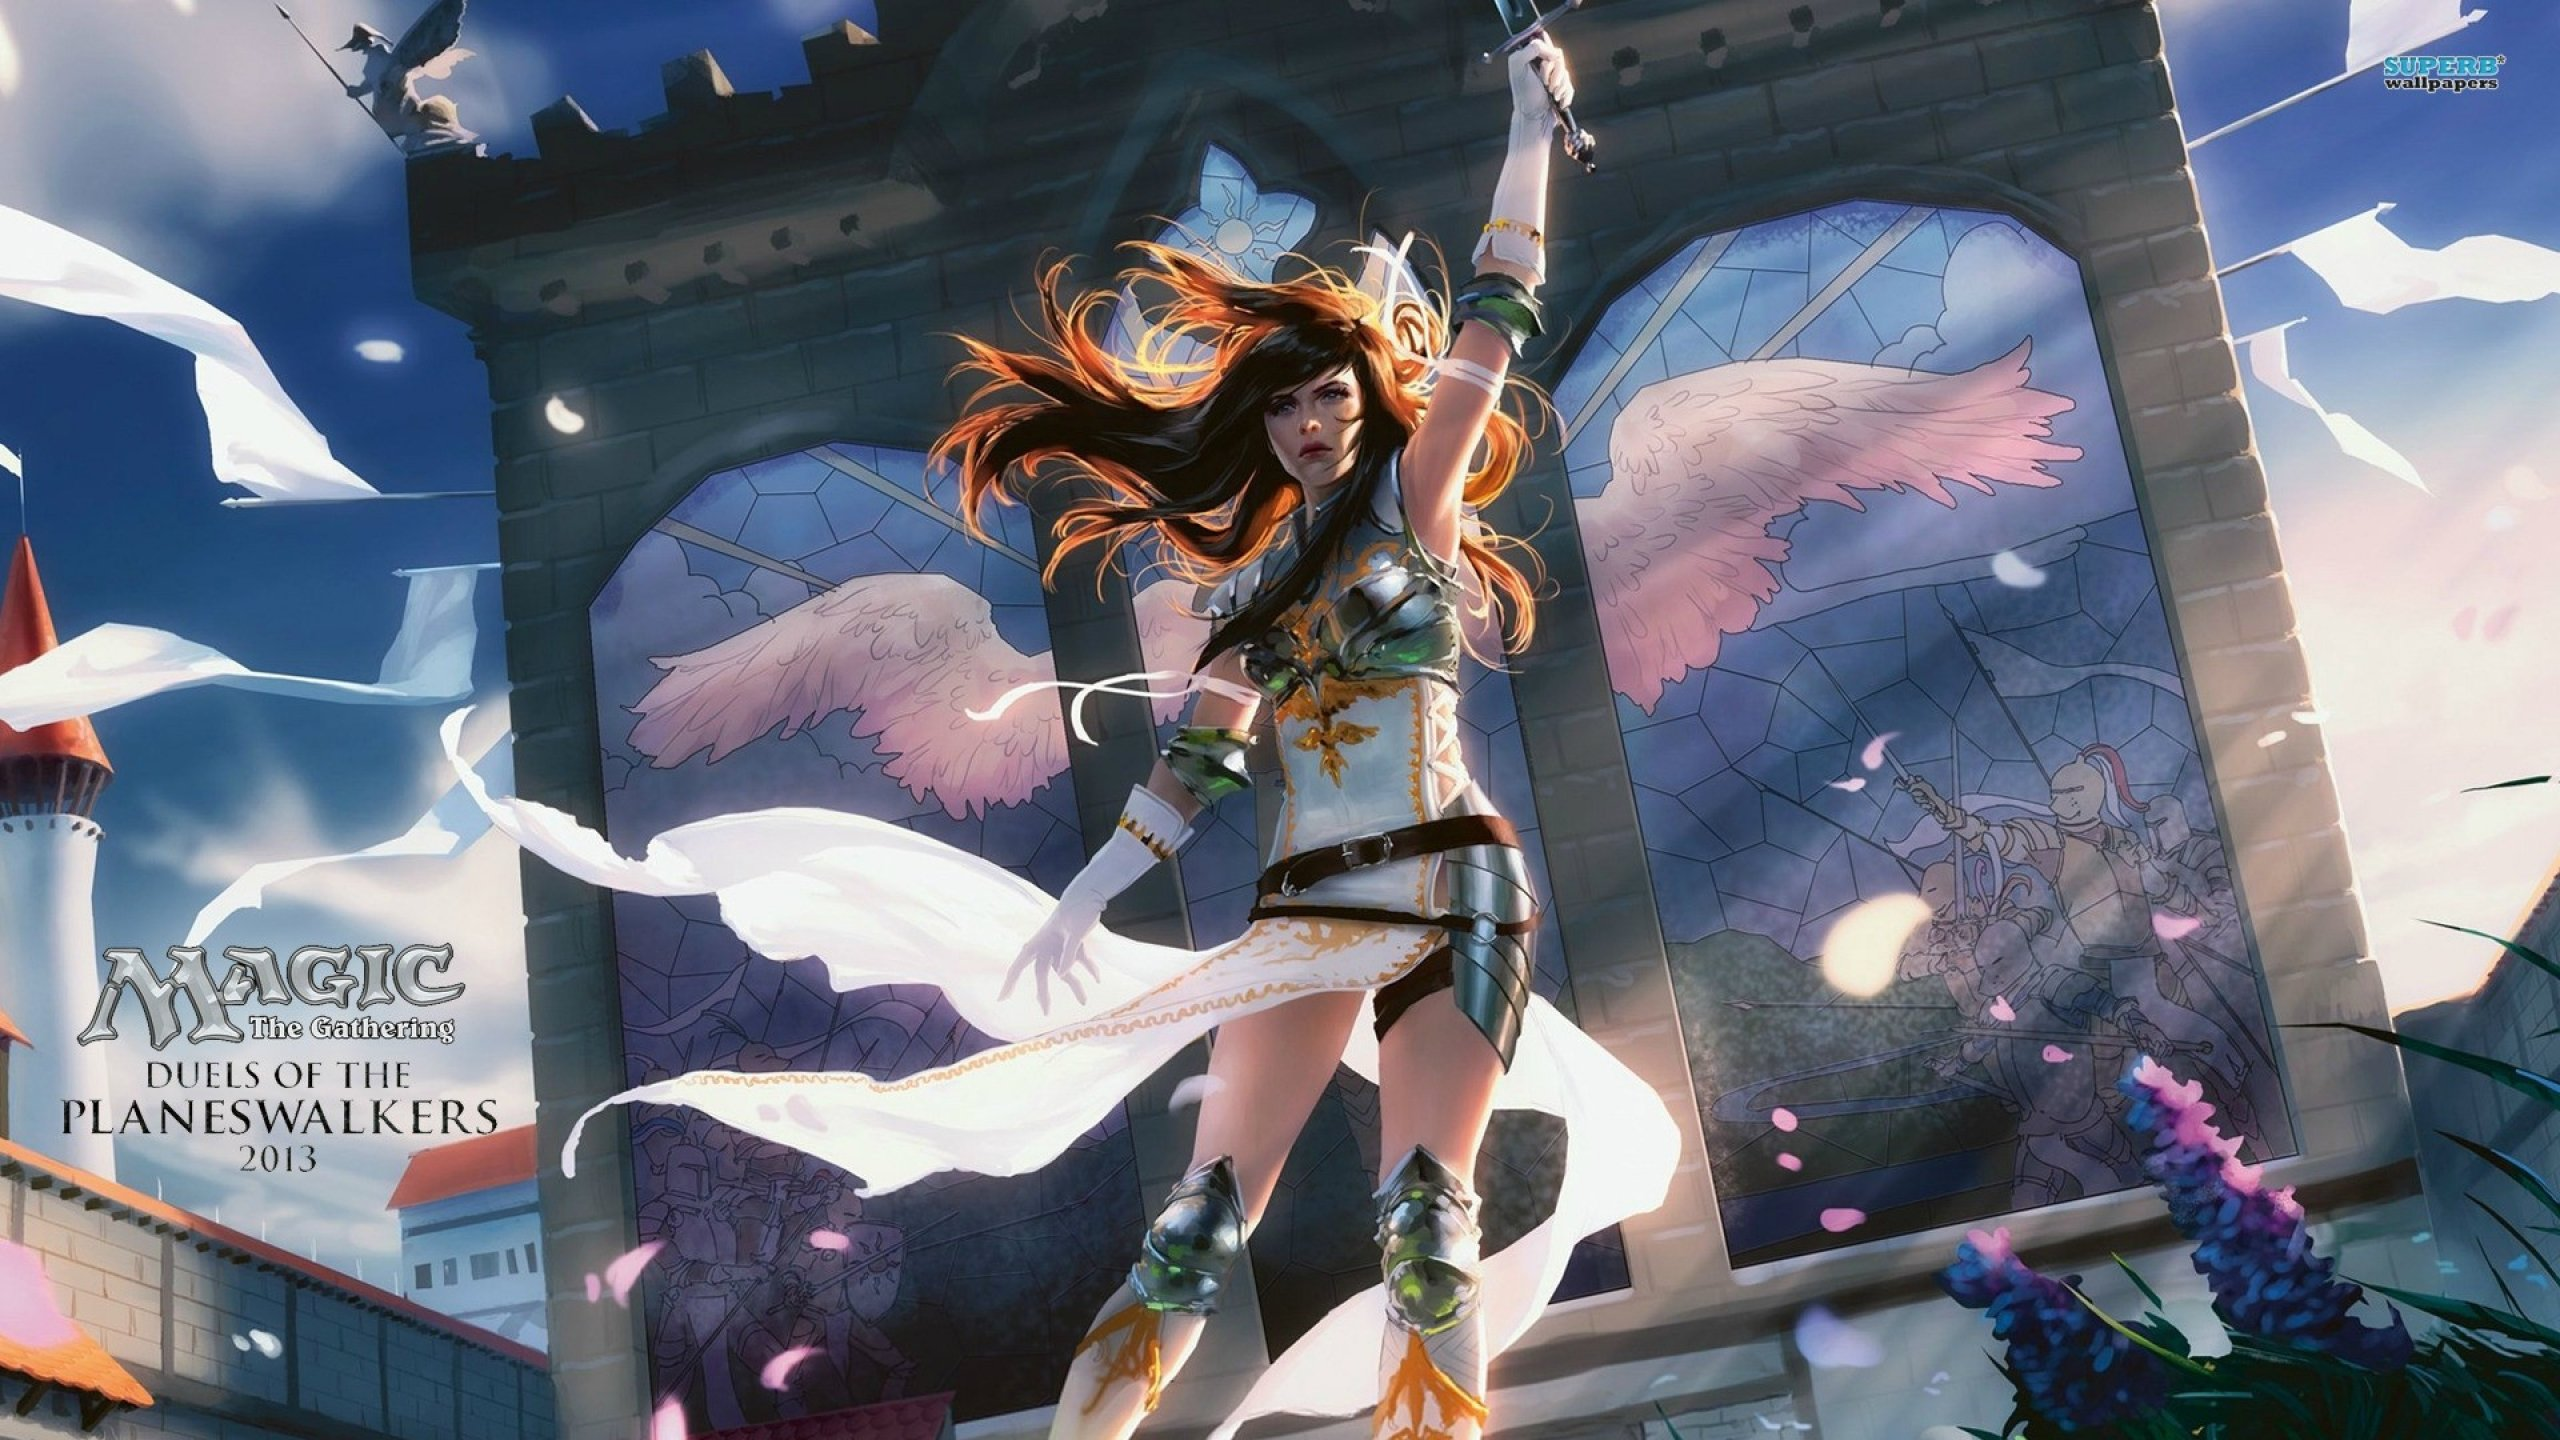 Fantasy Art Artwork Magic Gathering Dark Wallpaper 2560x1440